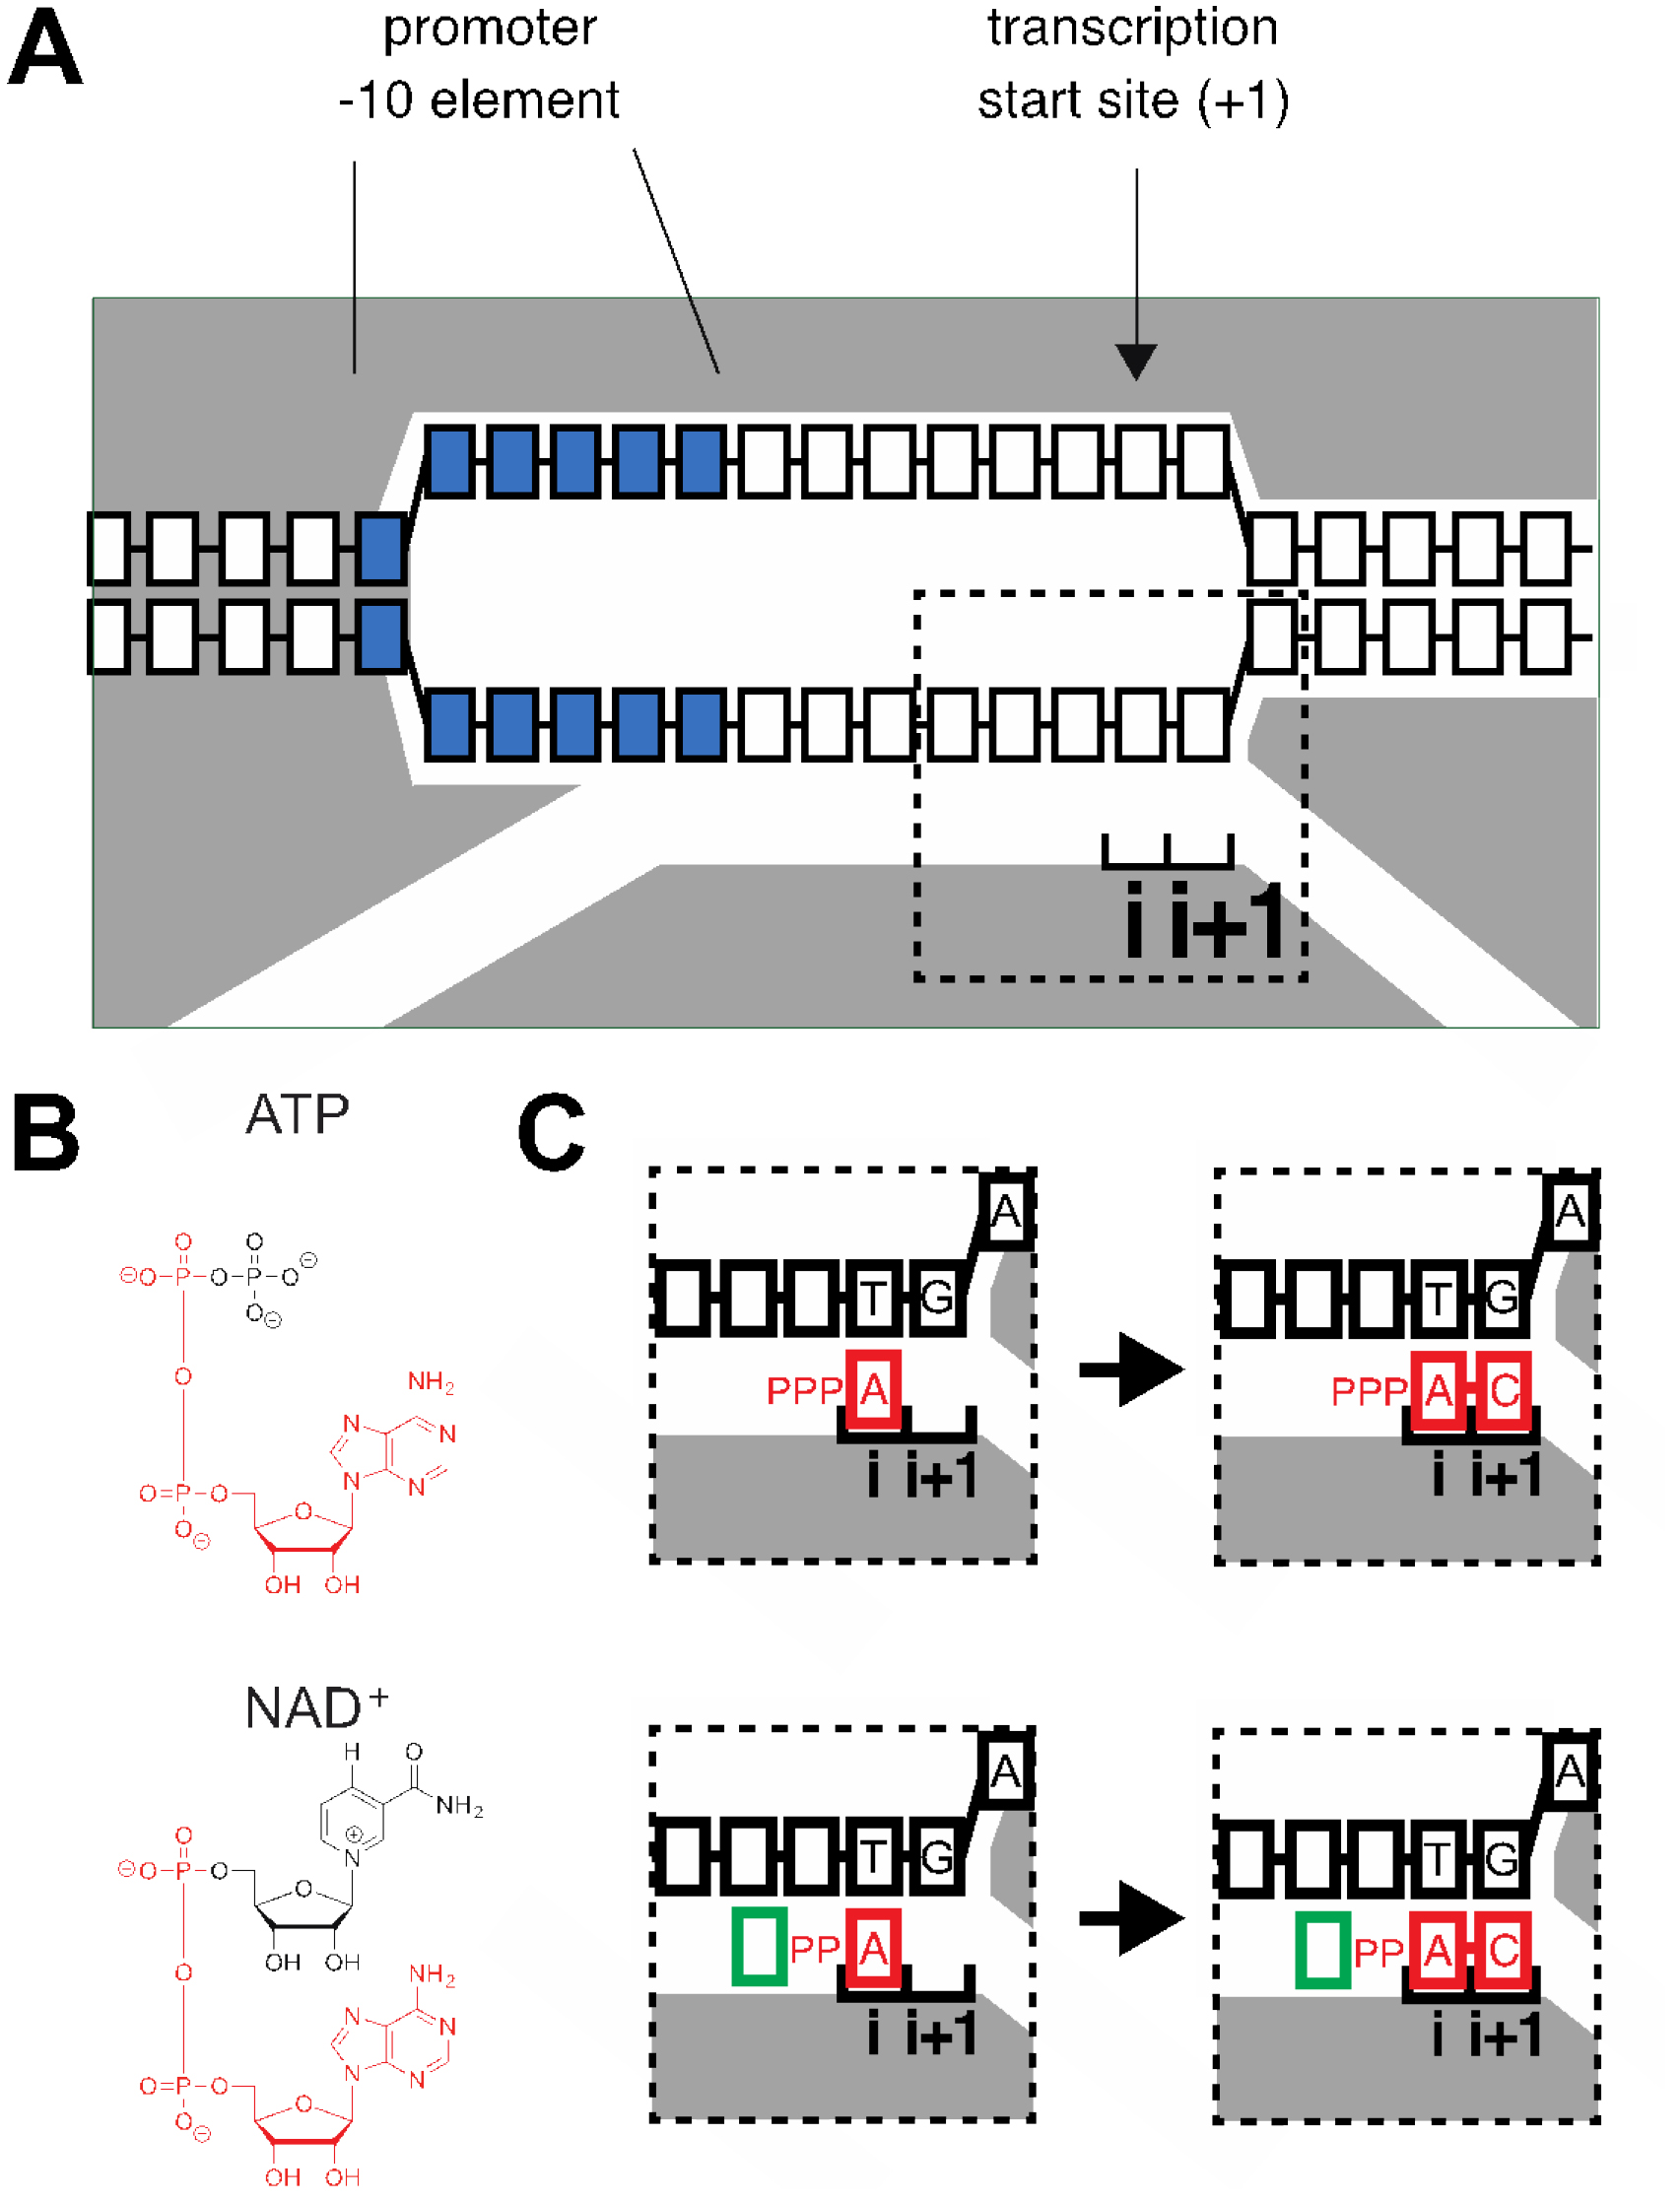 Rna capping by transcription initiation with non canonical gray rnap blue 10 element nucleotides i and i1 rnap active center initiating nucleotide binding site and extending nucleotide binding site boxes ccuart Gallery